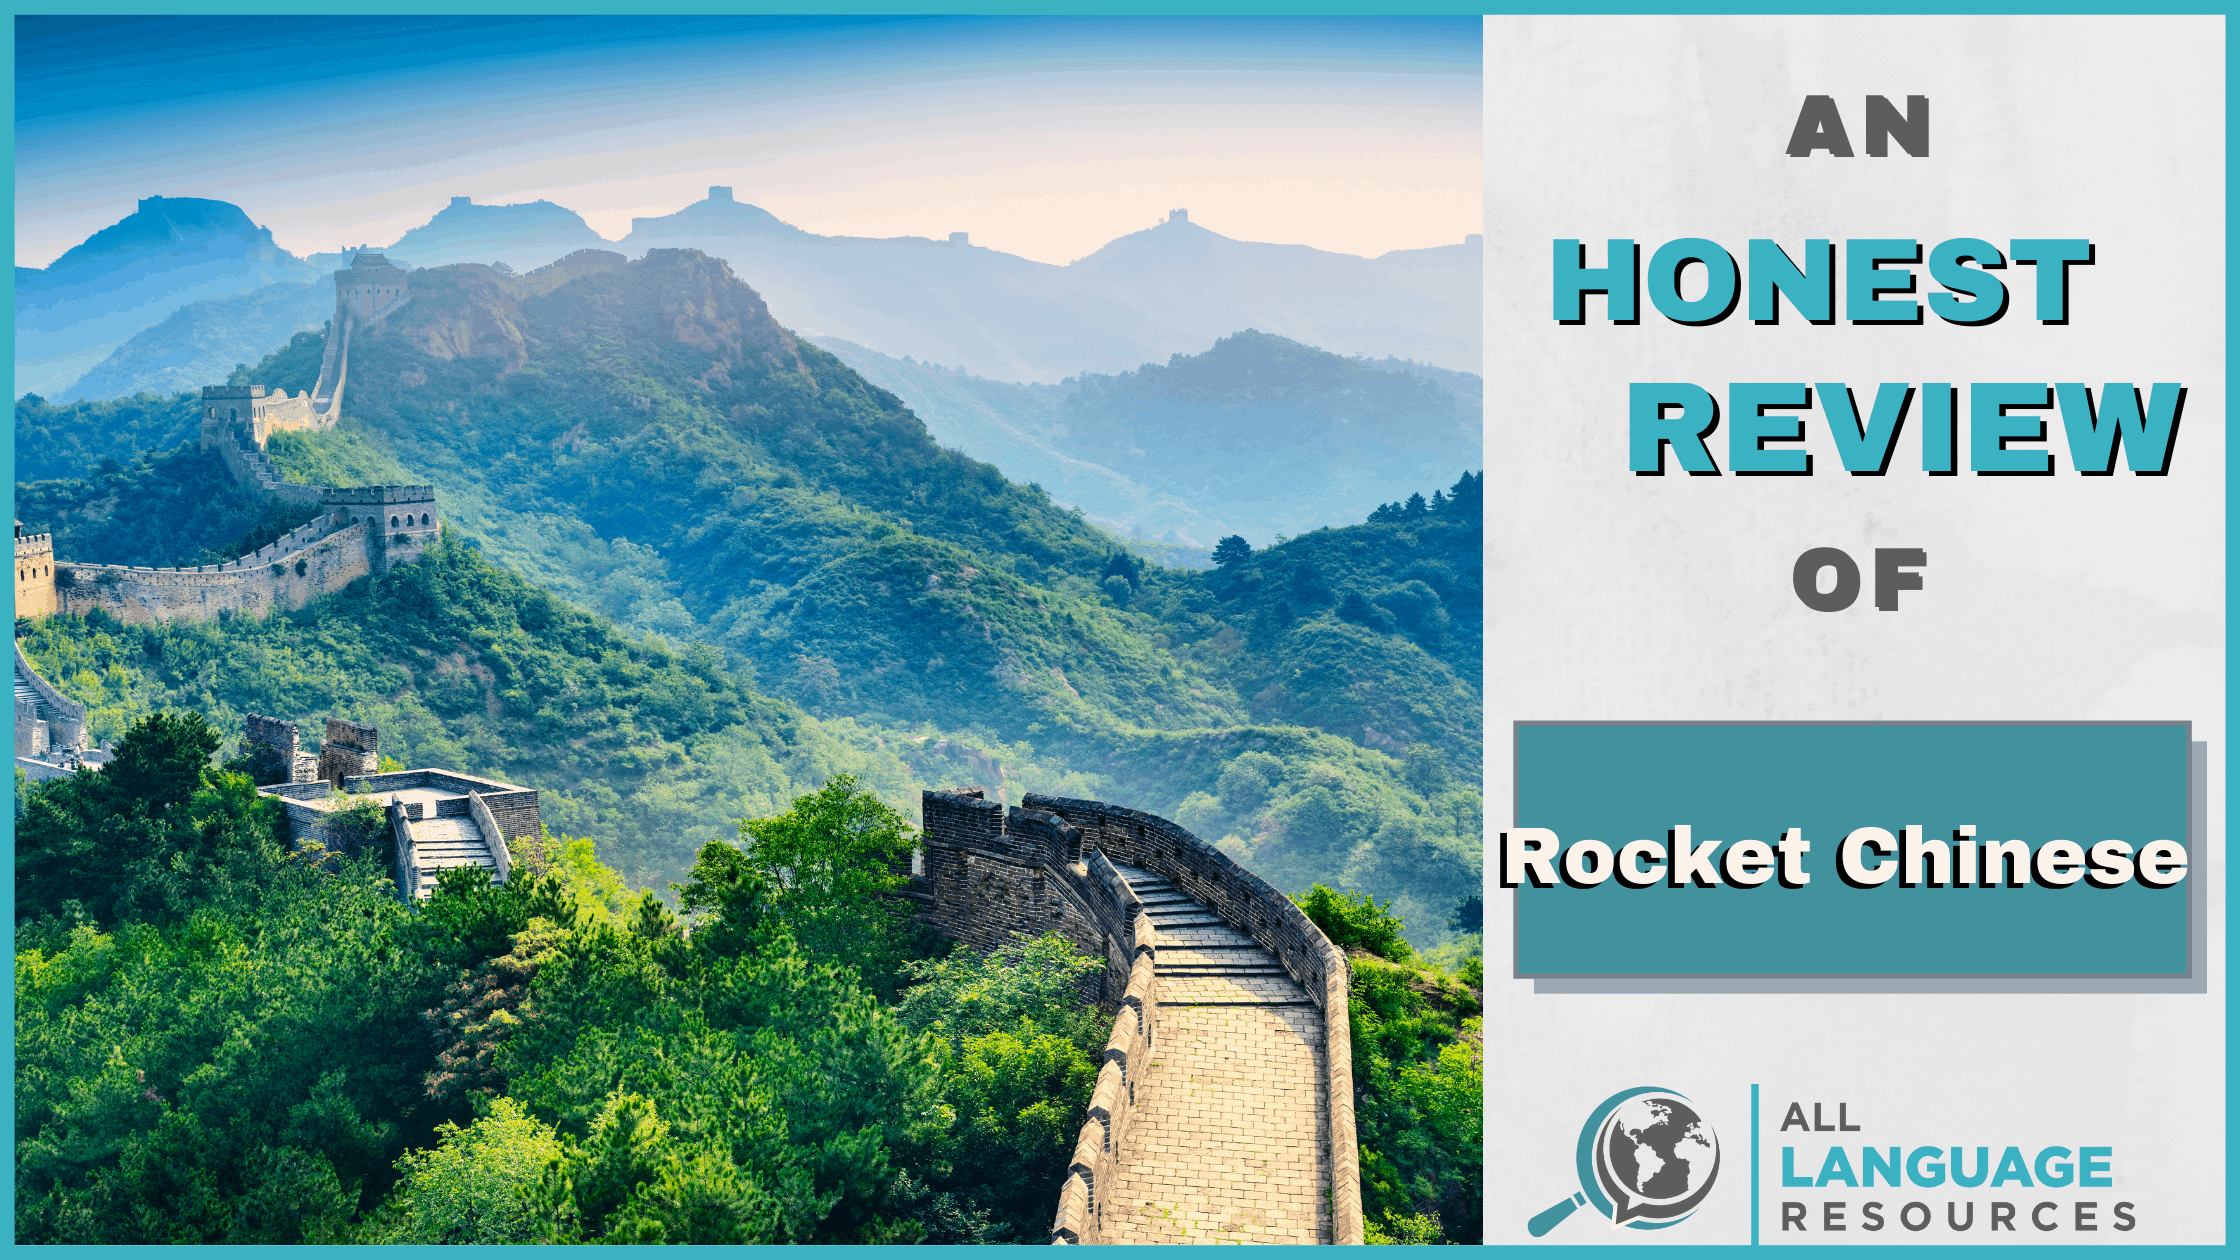 An Honest Review of Rocket Chinese With Image of The Great Wall of China